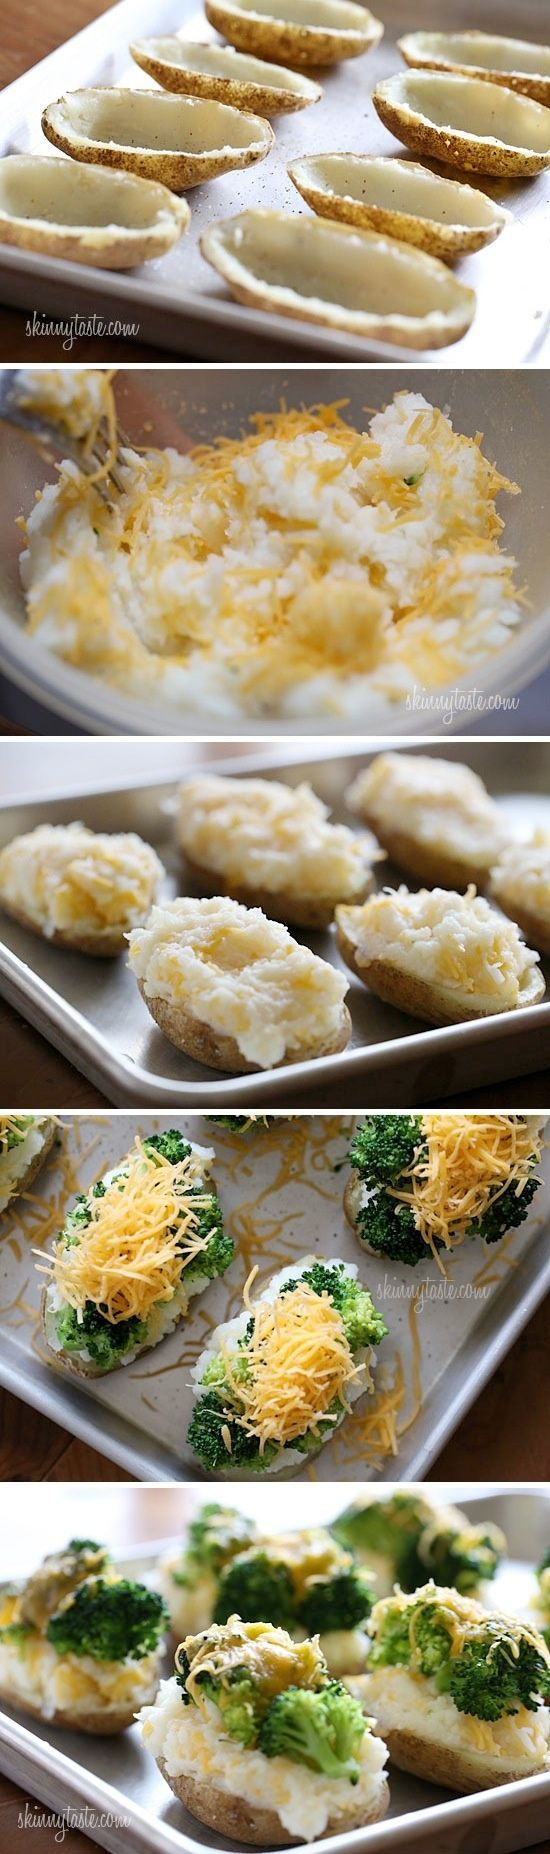 Broccoli and Cheese Twice Baked Potatoes | Recipe